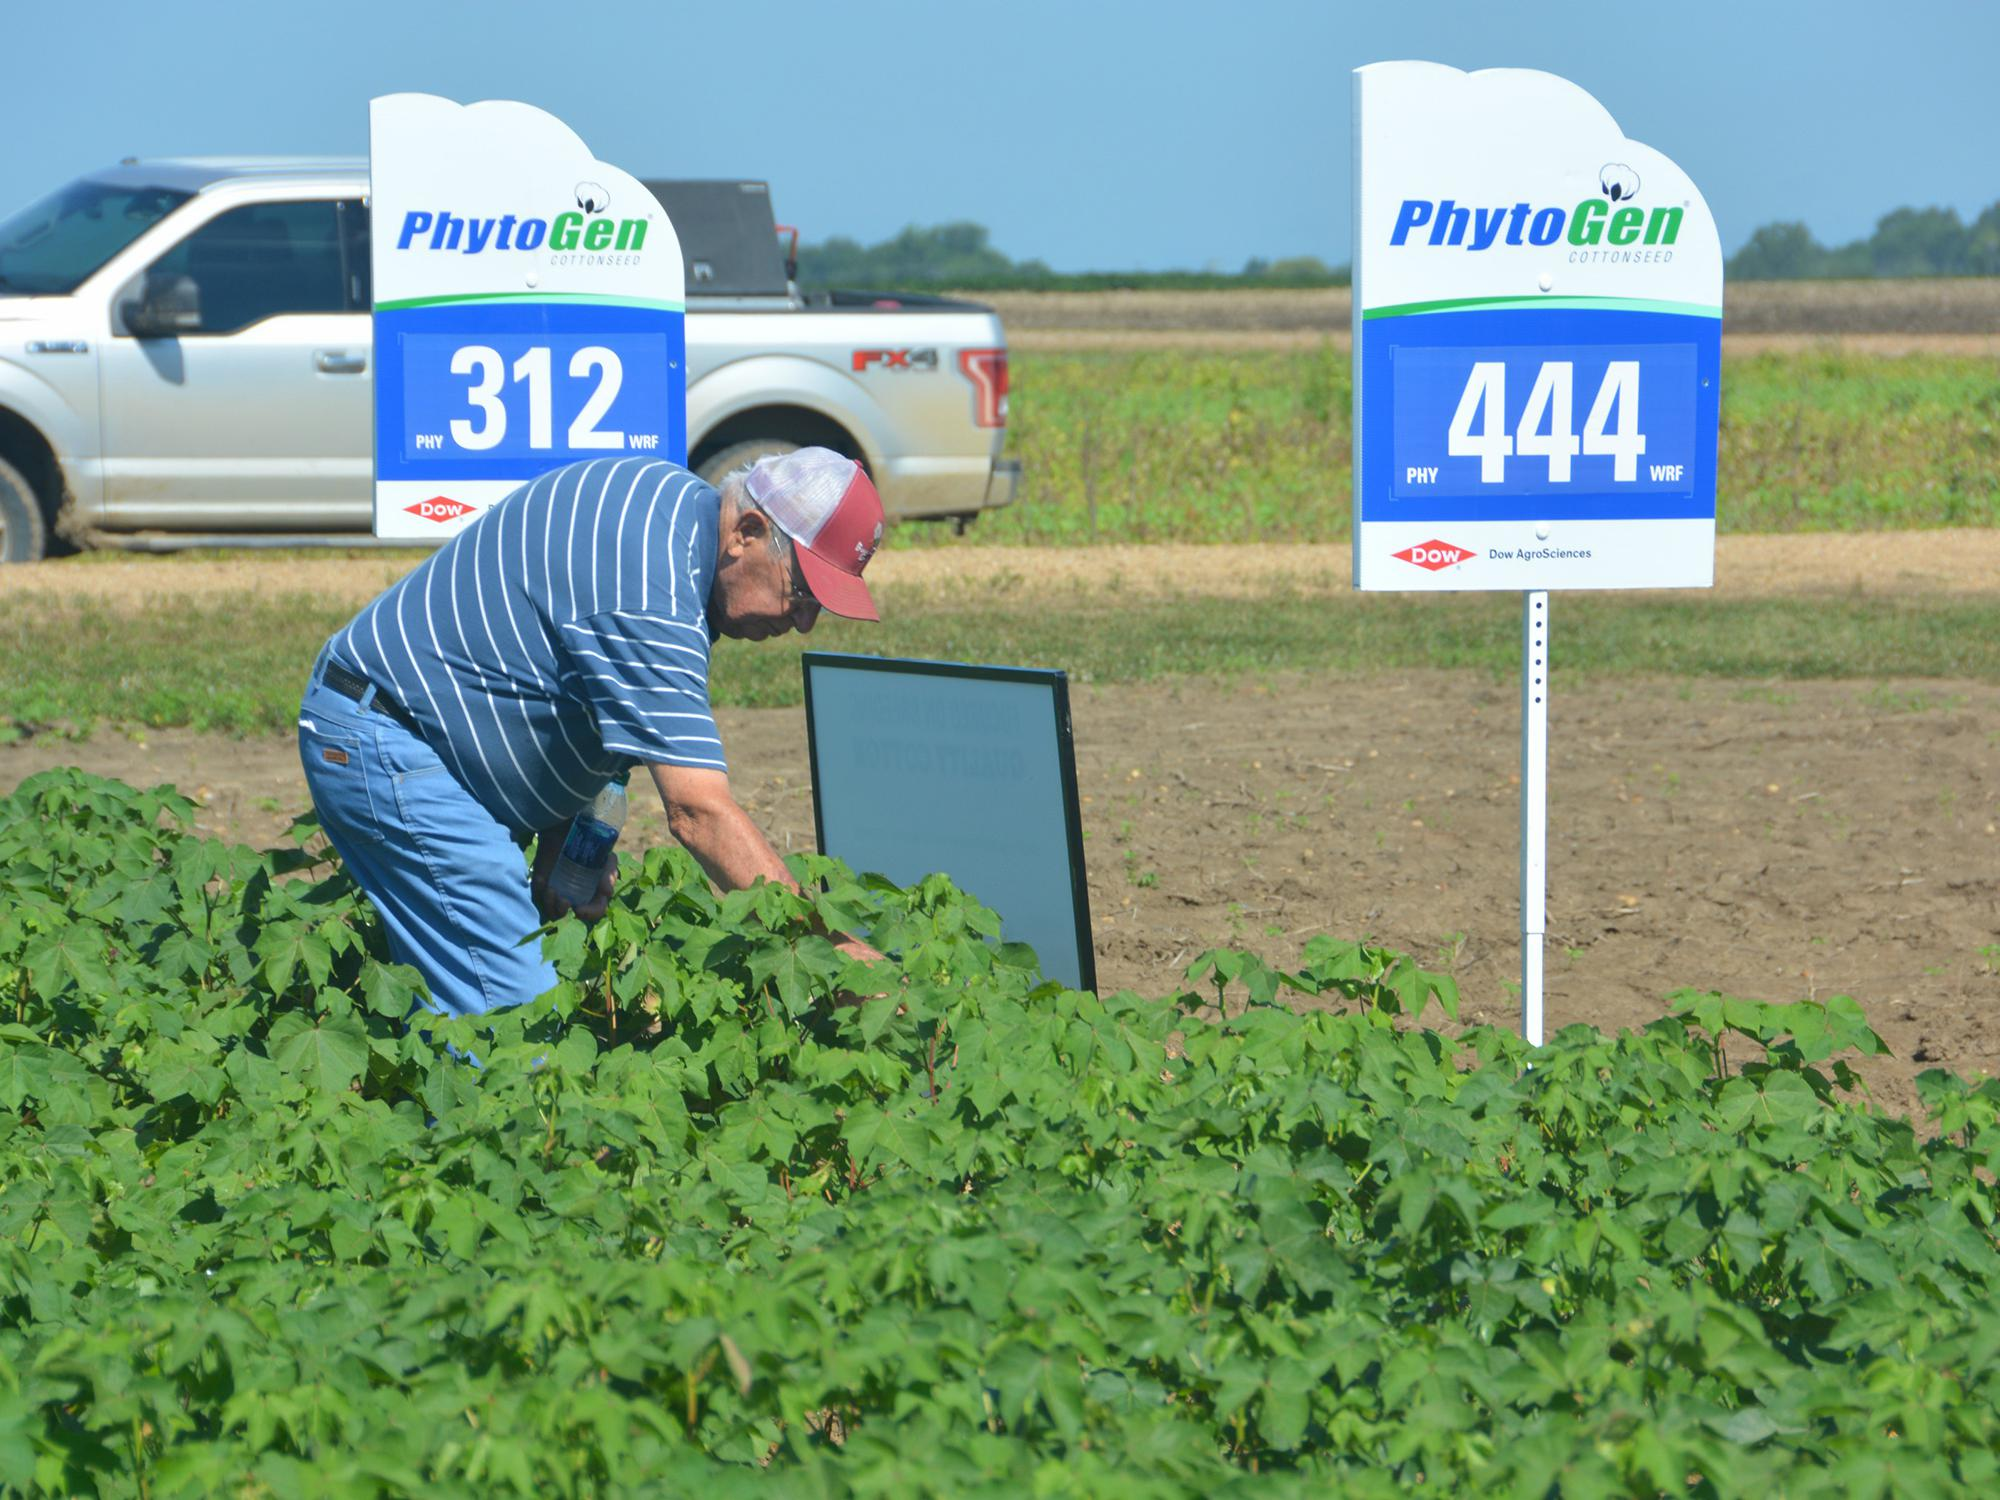 Award-winning farmer Paul Good examines cotton growing in Noxubee County during a Mississippi State University field tour on July 12, 2017. Good said he remembers a time when farmers did not grow cotton in the area, mostly because of boll weevils. (Photo by MSU Extension Service/Linda Breazeale)